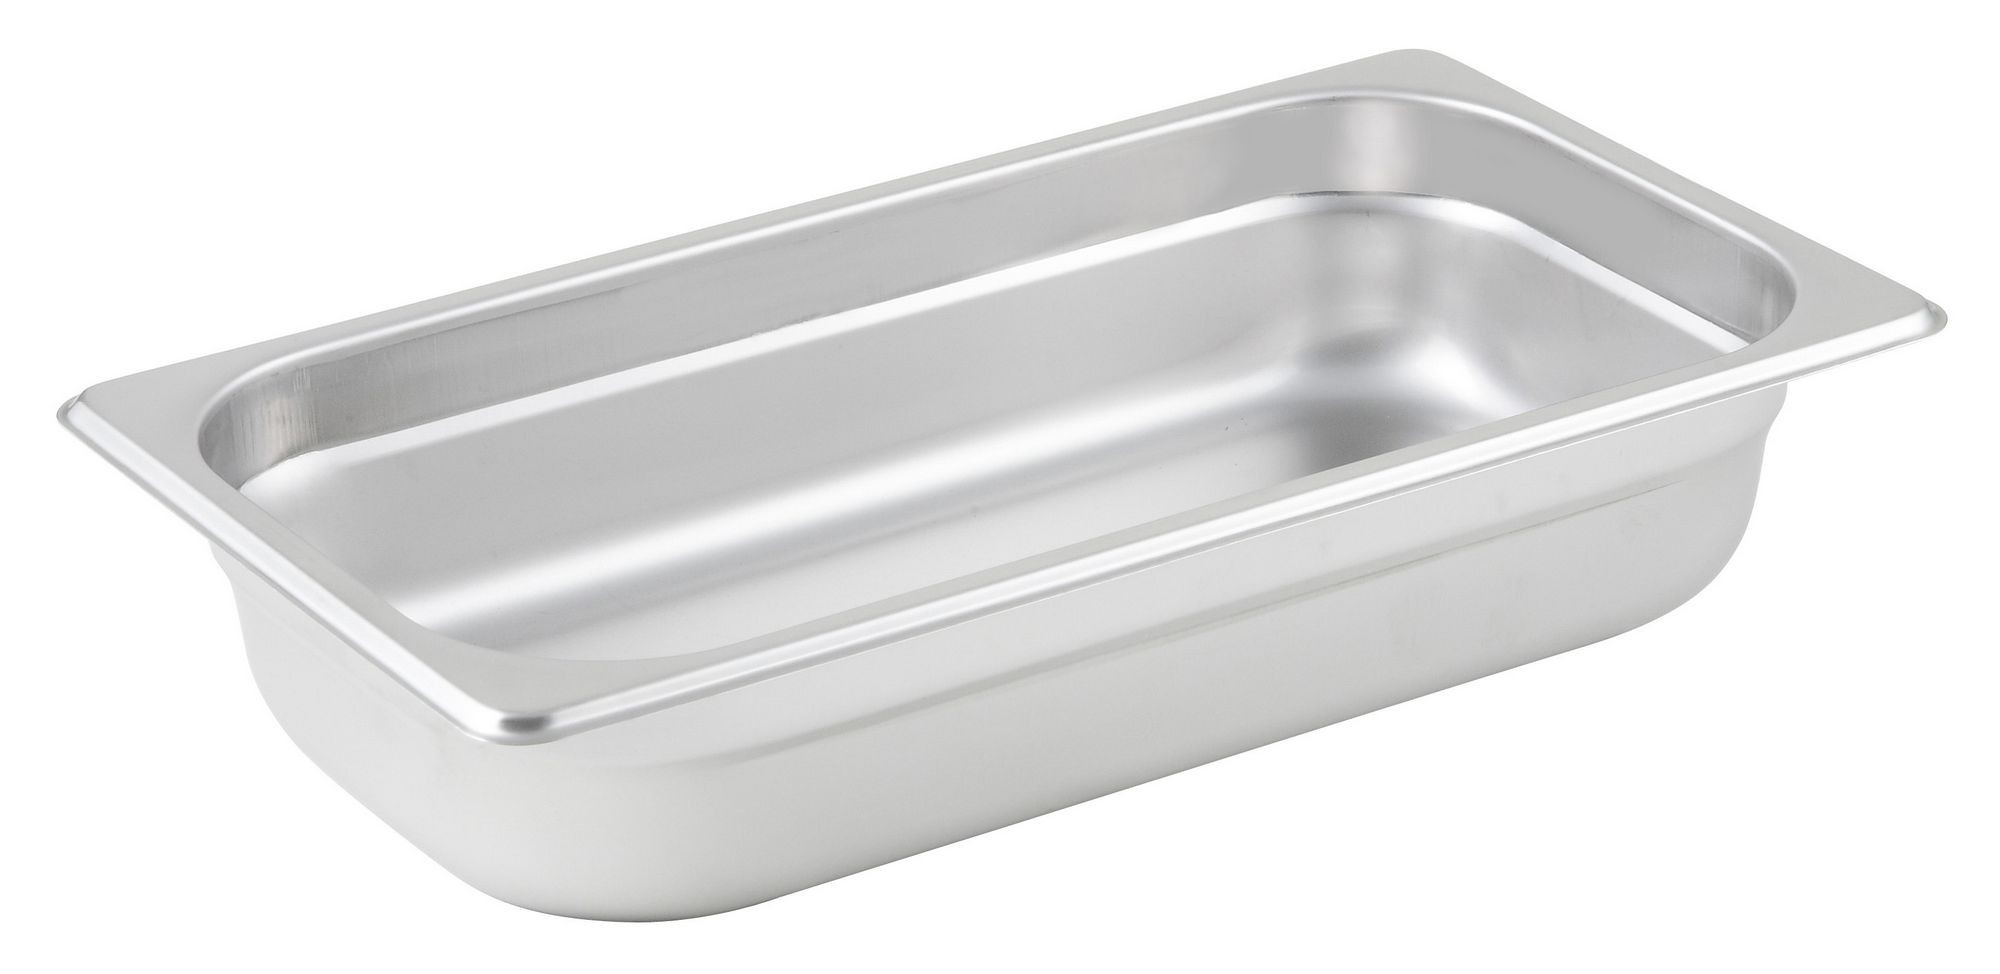 "Winco SPJP-302 1/3 Size Anti-Jam 23 Gauge Steam Table Pan 2-1/2"" Deep"